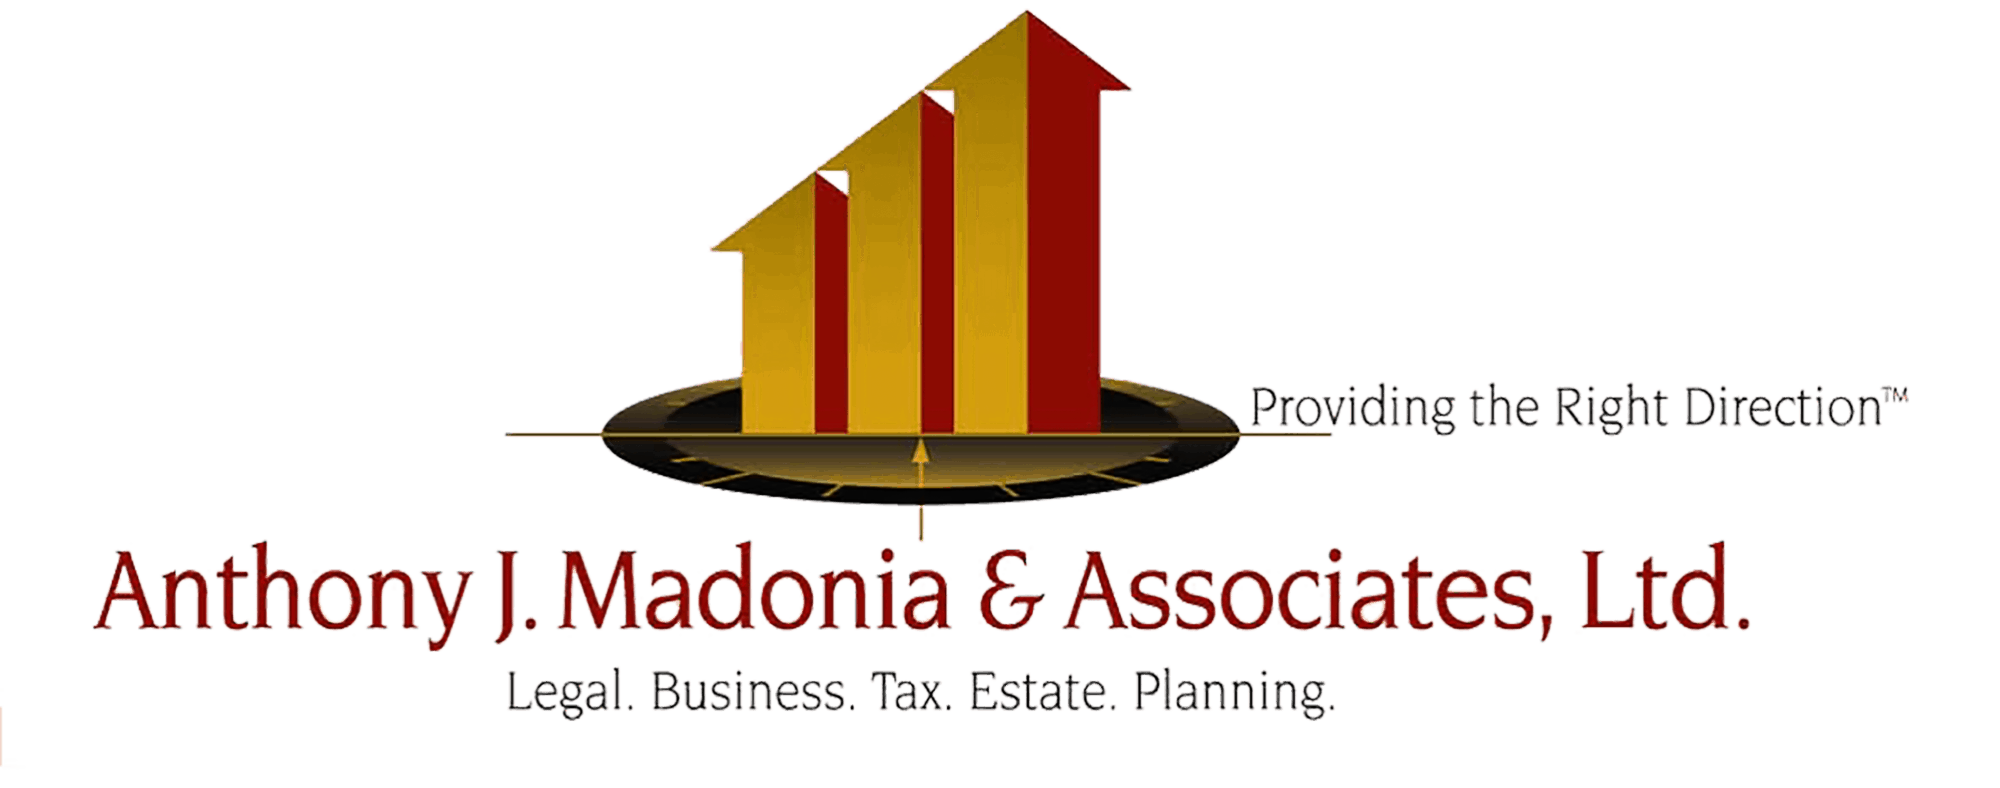 Anthony J. Madonia & Associates, Ltd.